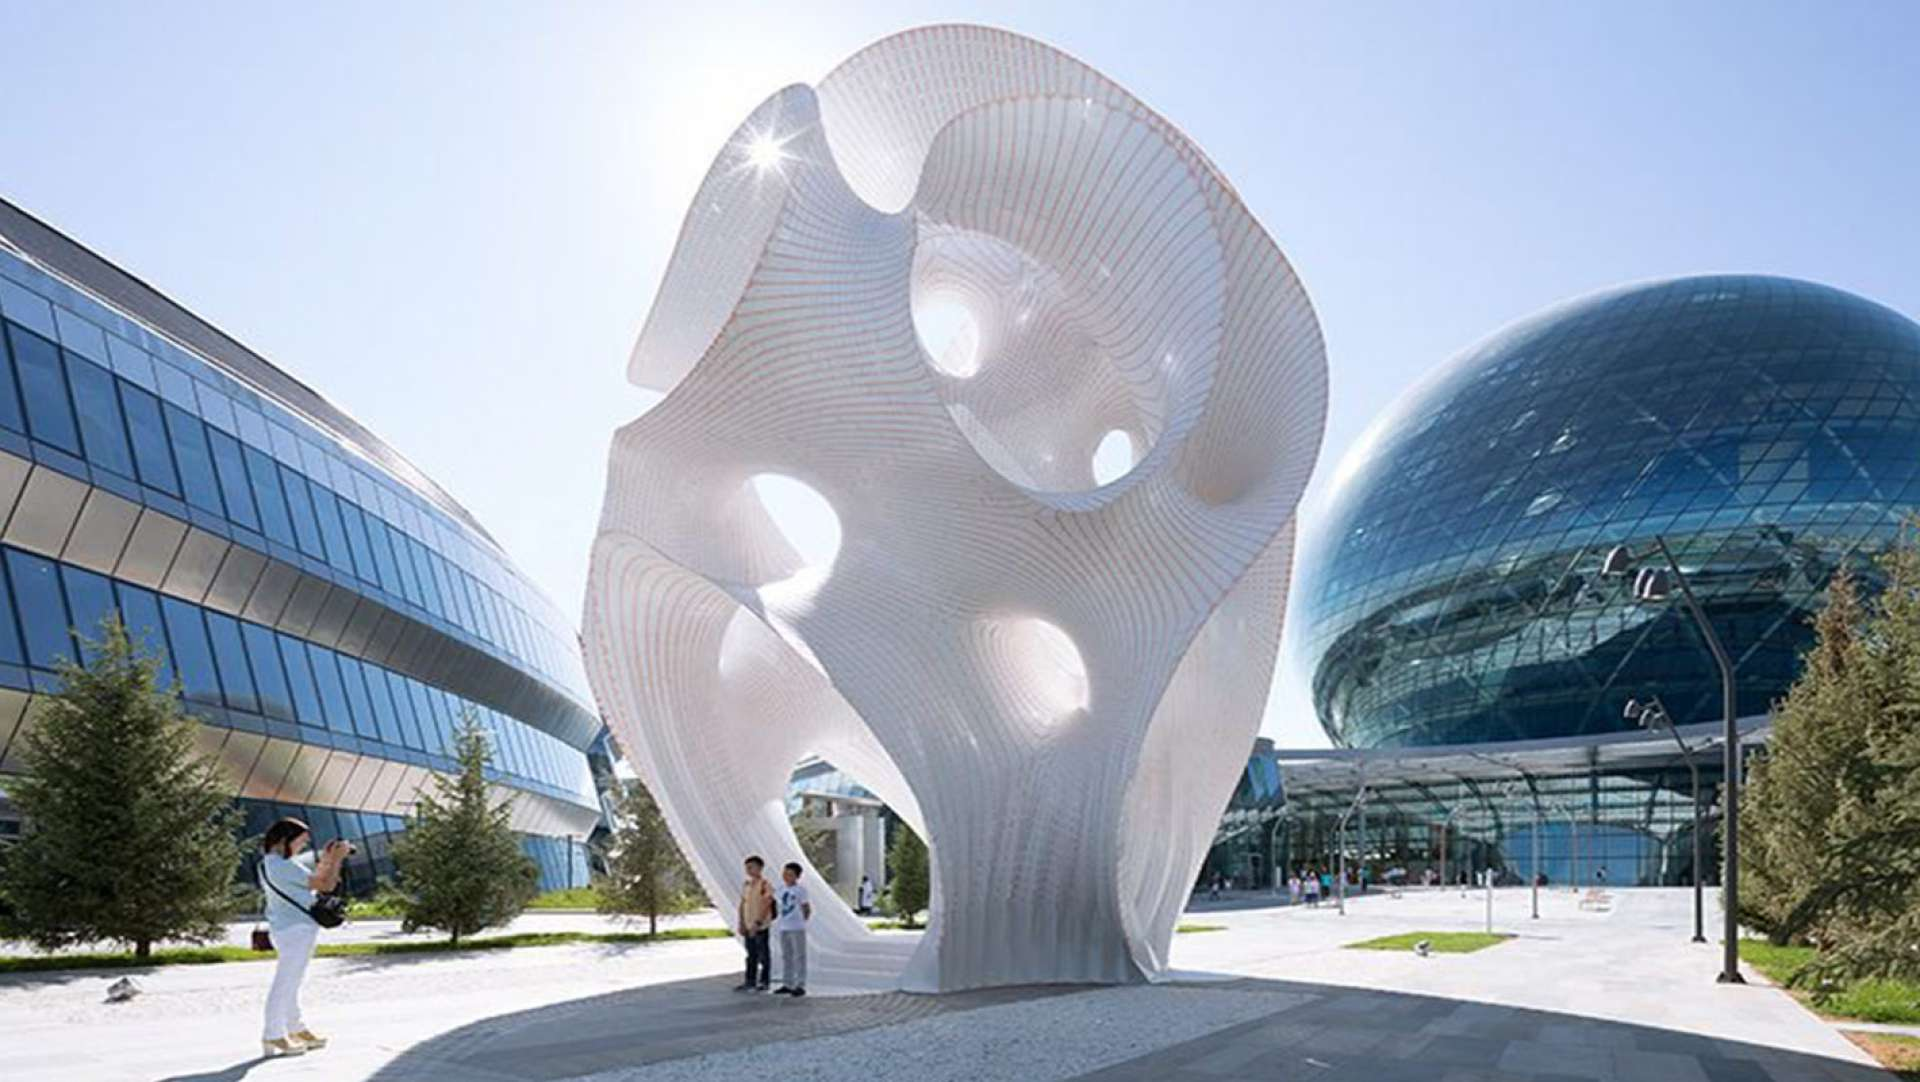 A Towering 4-Story Organic Structure Built From Material as Thin as a Coin by Christopher Jobson